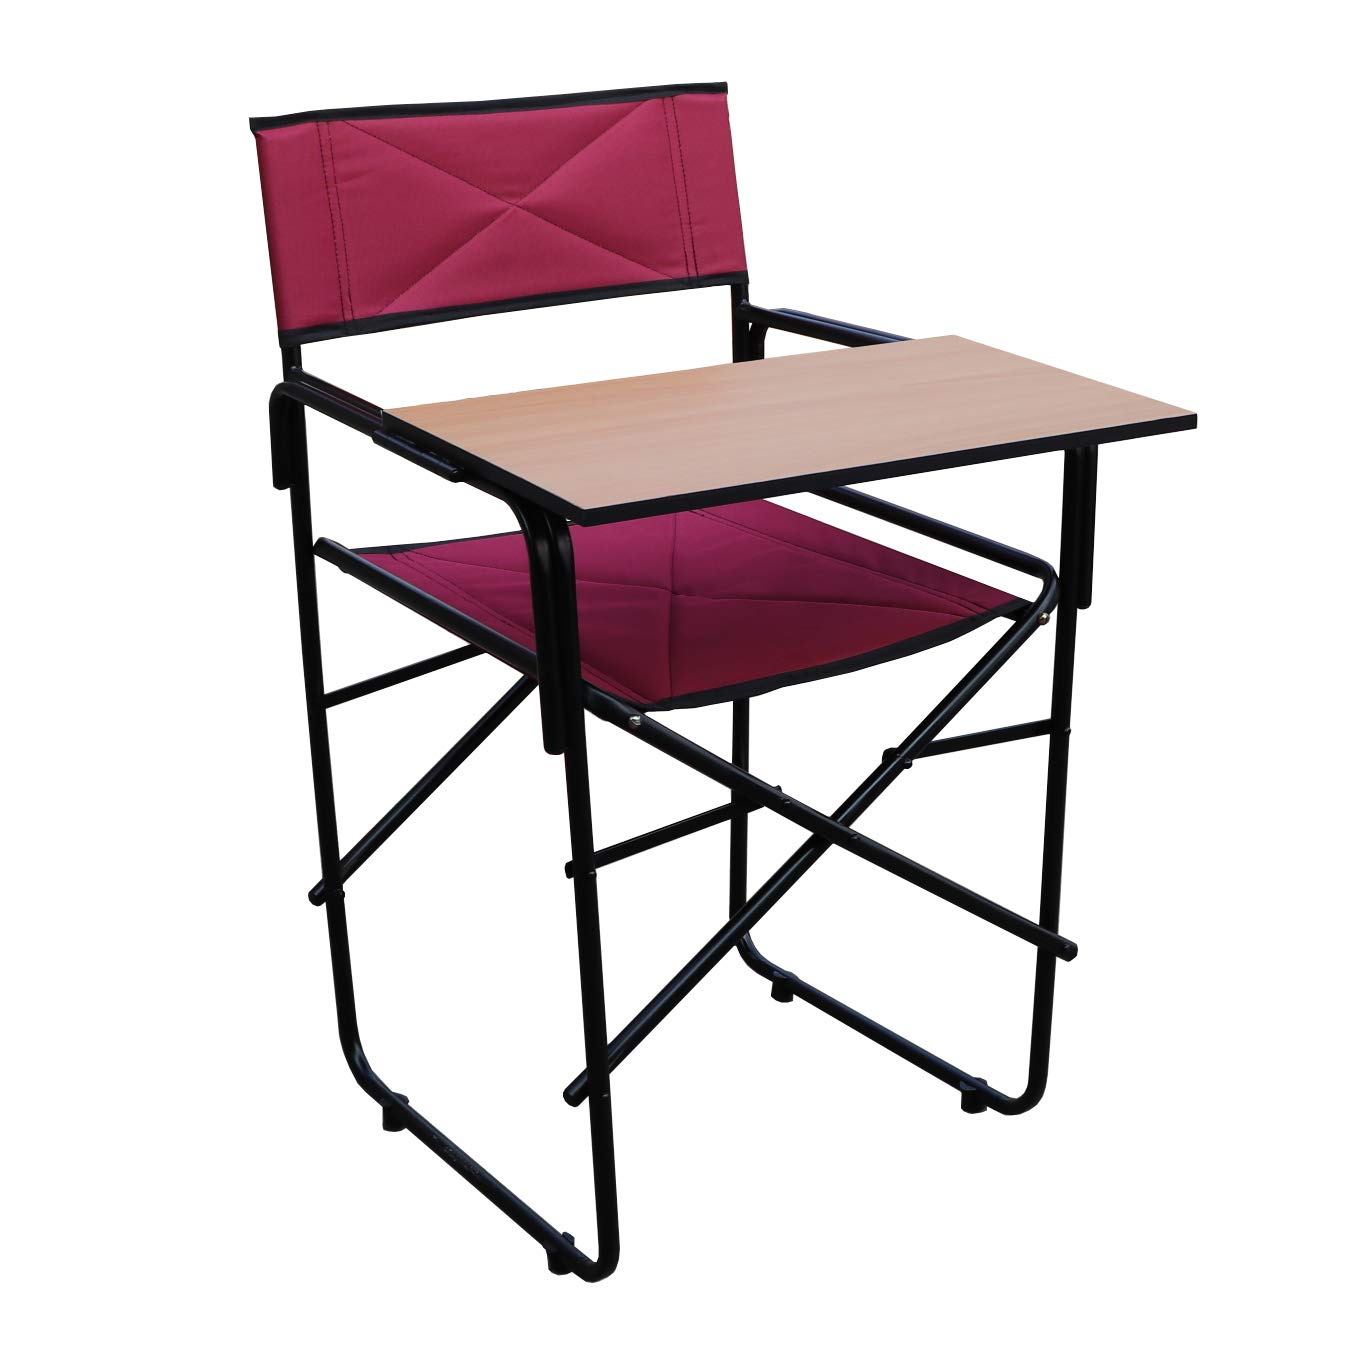 Spacecrafts Folding Study Chair with Writing pad (Standard, Maroon)